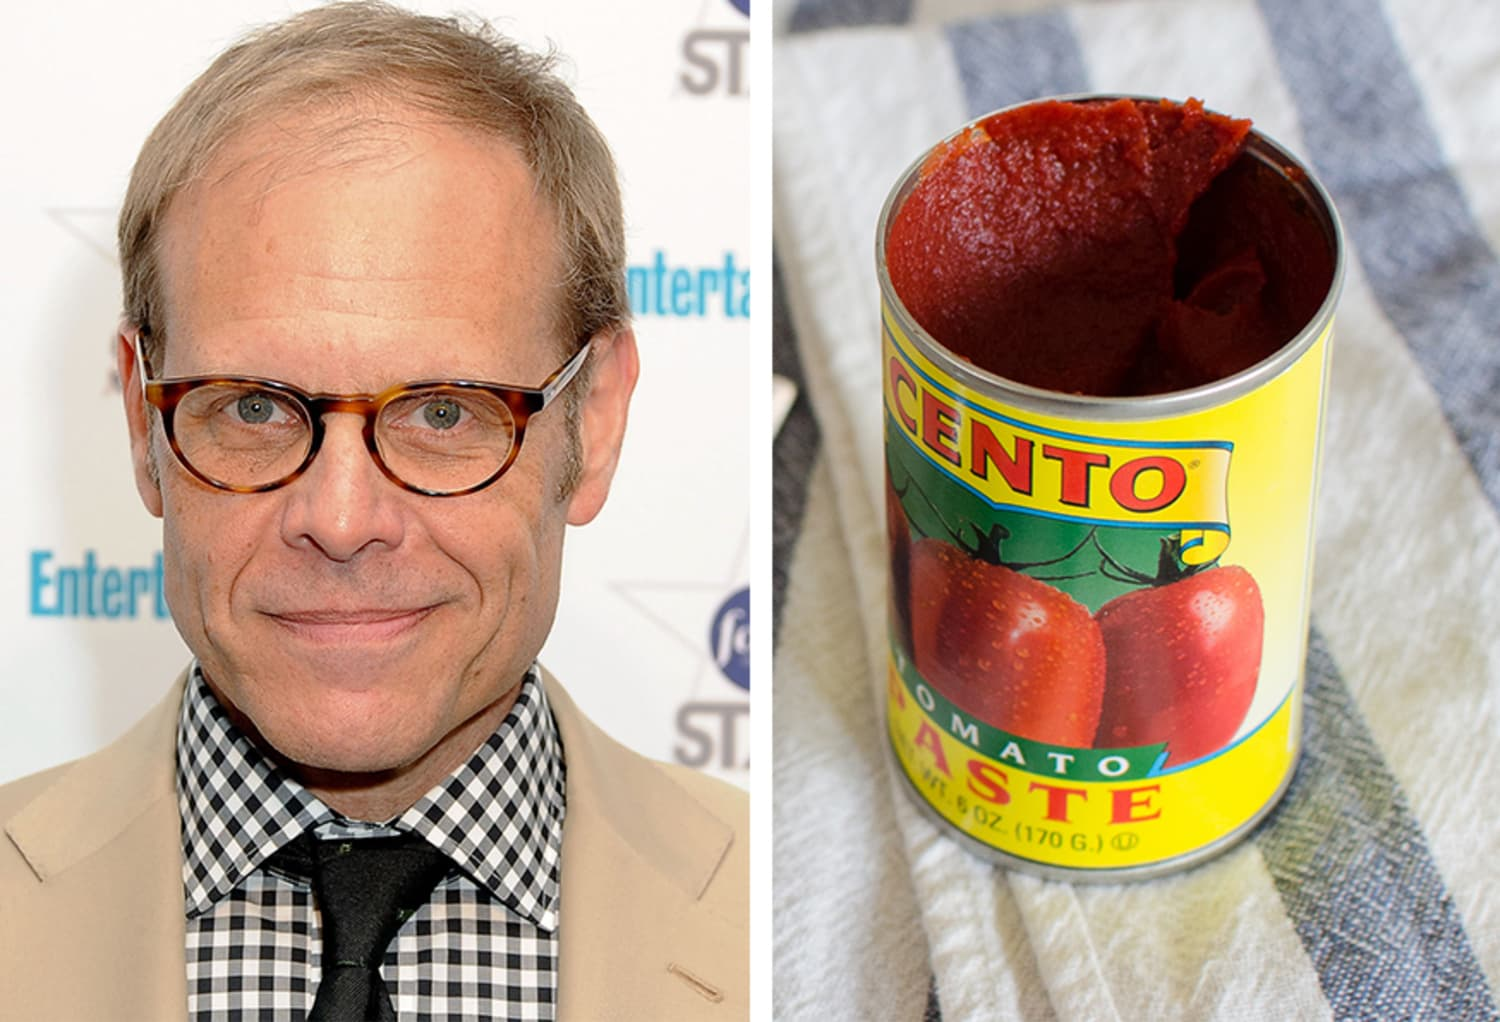 Here's How to Properly Store Tomato Paste, According to Alton Brown